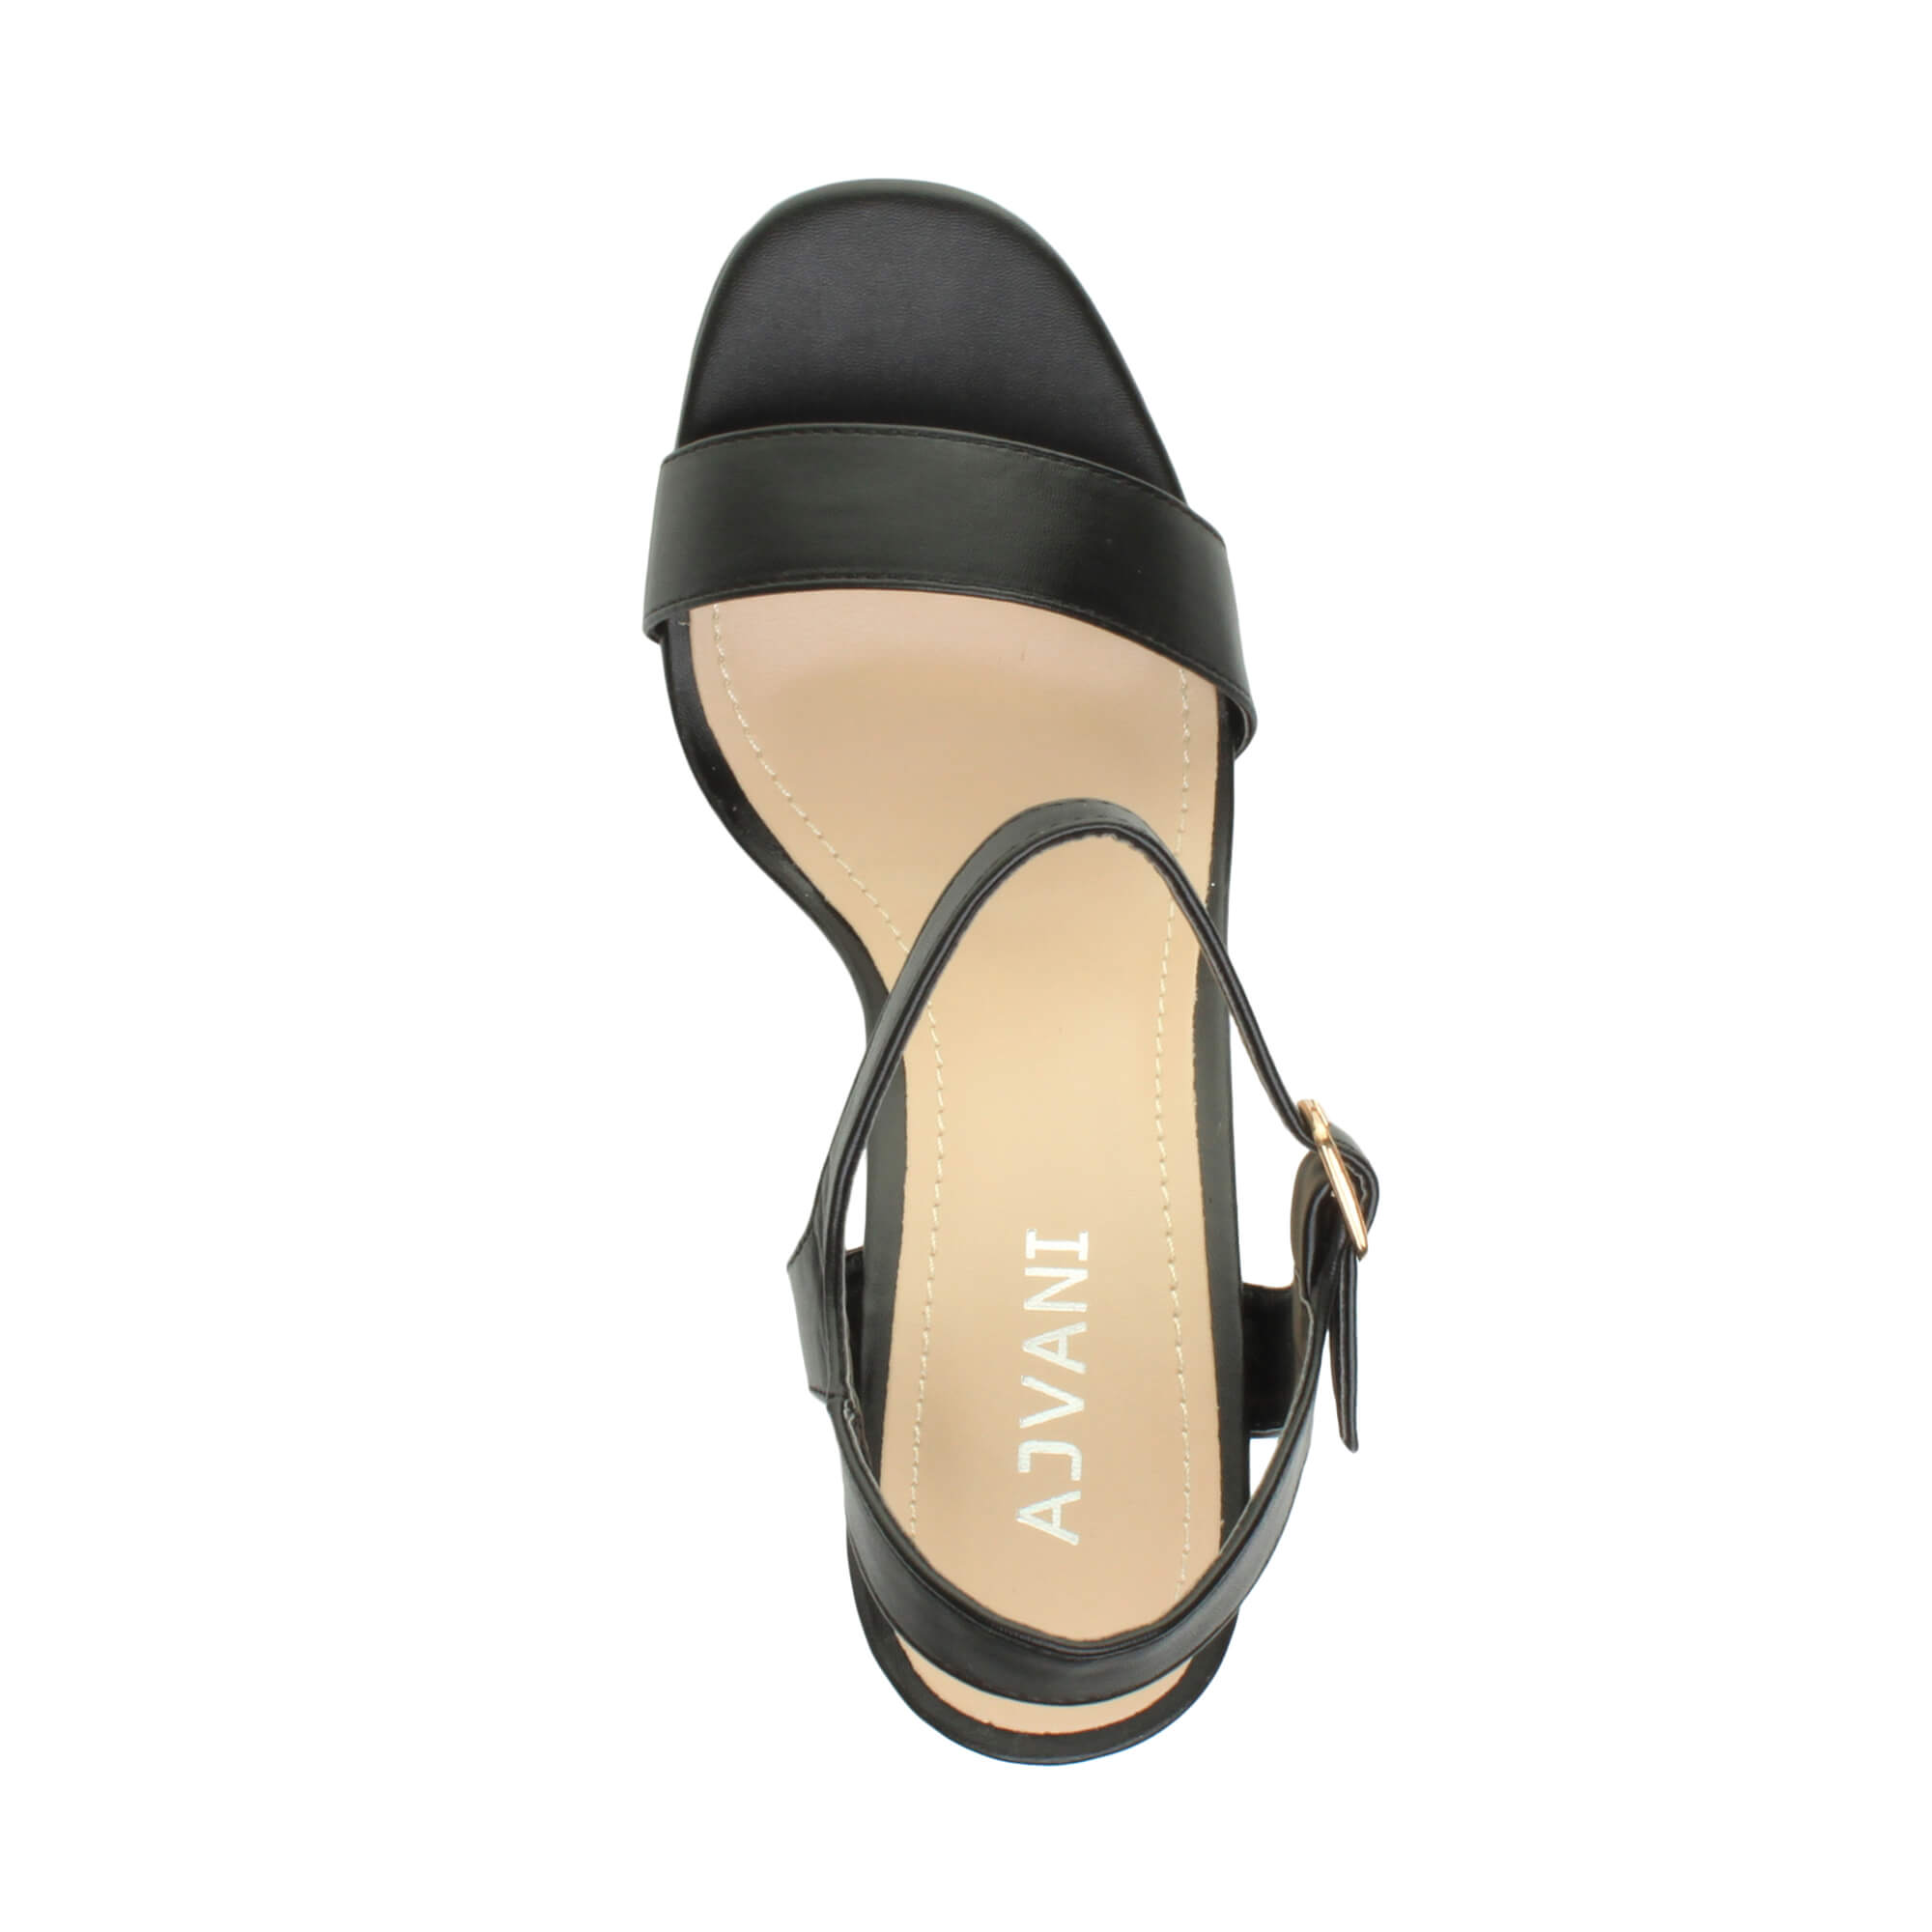 WOMENS-LADIES-HIGH-HEEL-BUCKLE-STRAPPY-BASIC-BARELY-THERE-SANDALS-SHOES-SIZE thumbnail 7